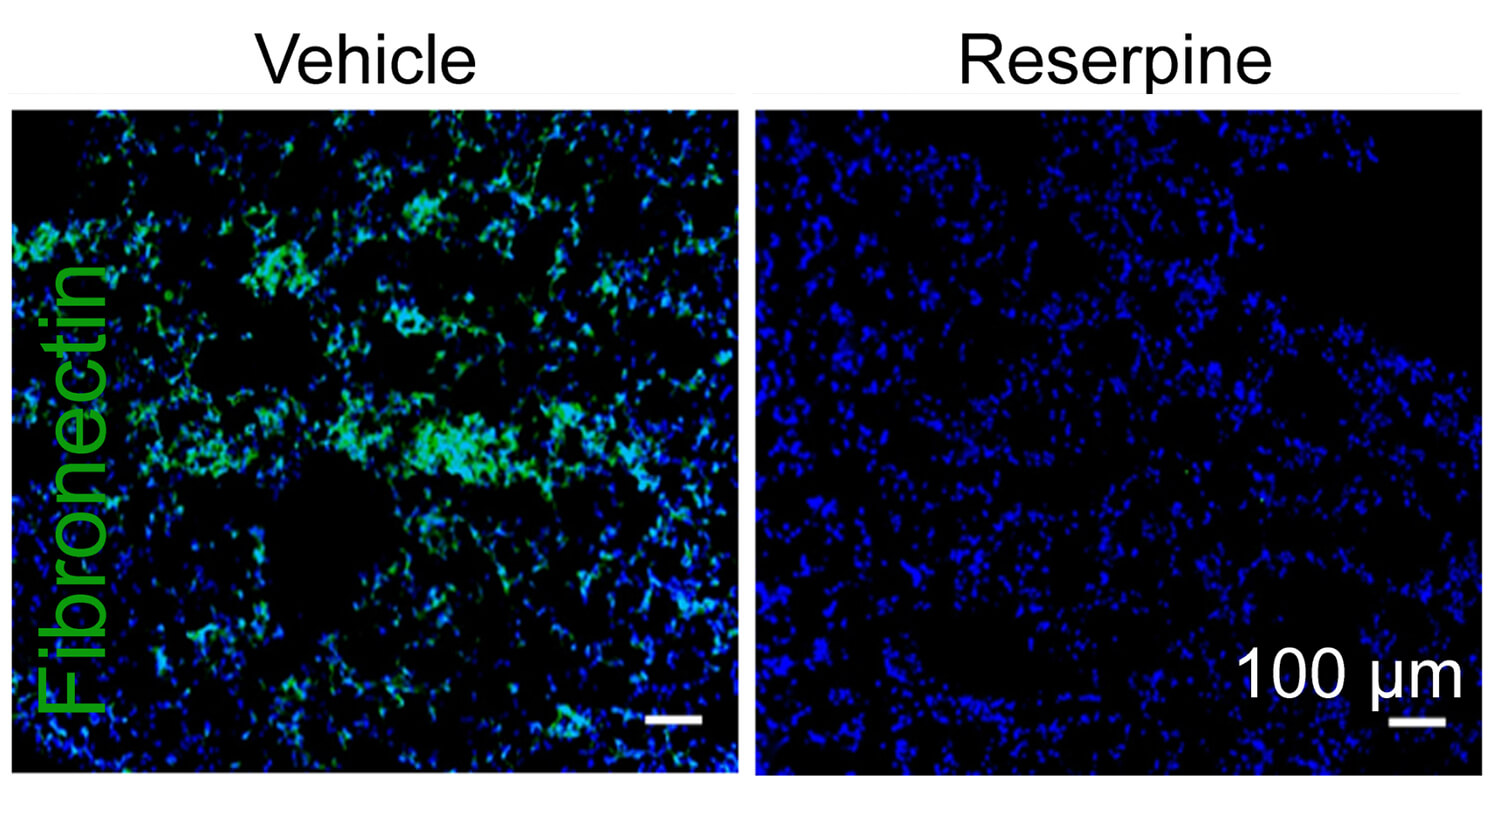 In a mouse model, the FDA-approved drug reserpine seemed to hamper the ability of tumors to reshape distant tissues in ways that would encourage metastasis, for example, reducing the accumulation of fibronectin, a protein associated with certain types of cancer.